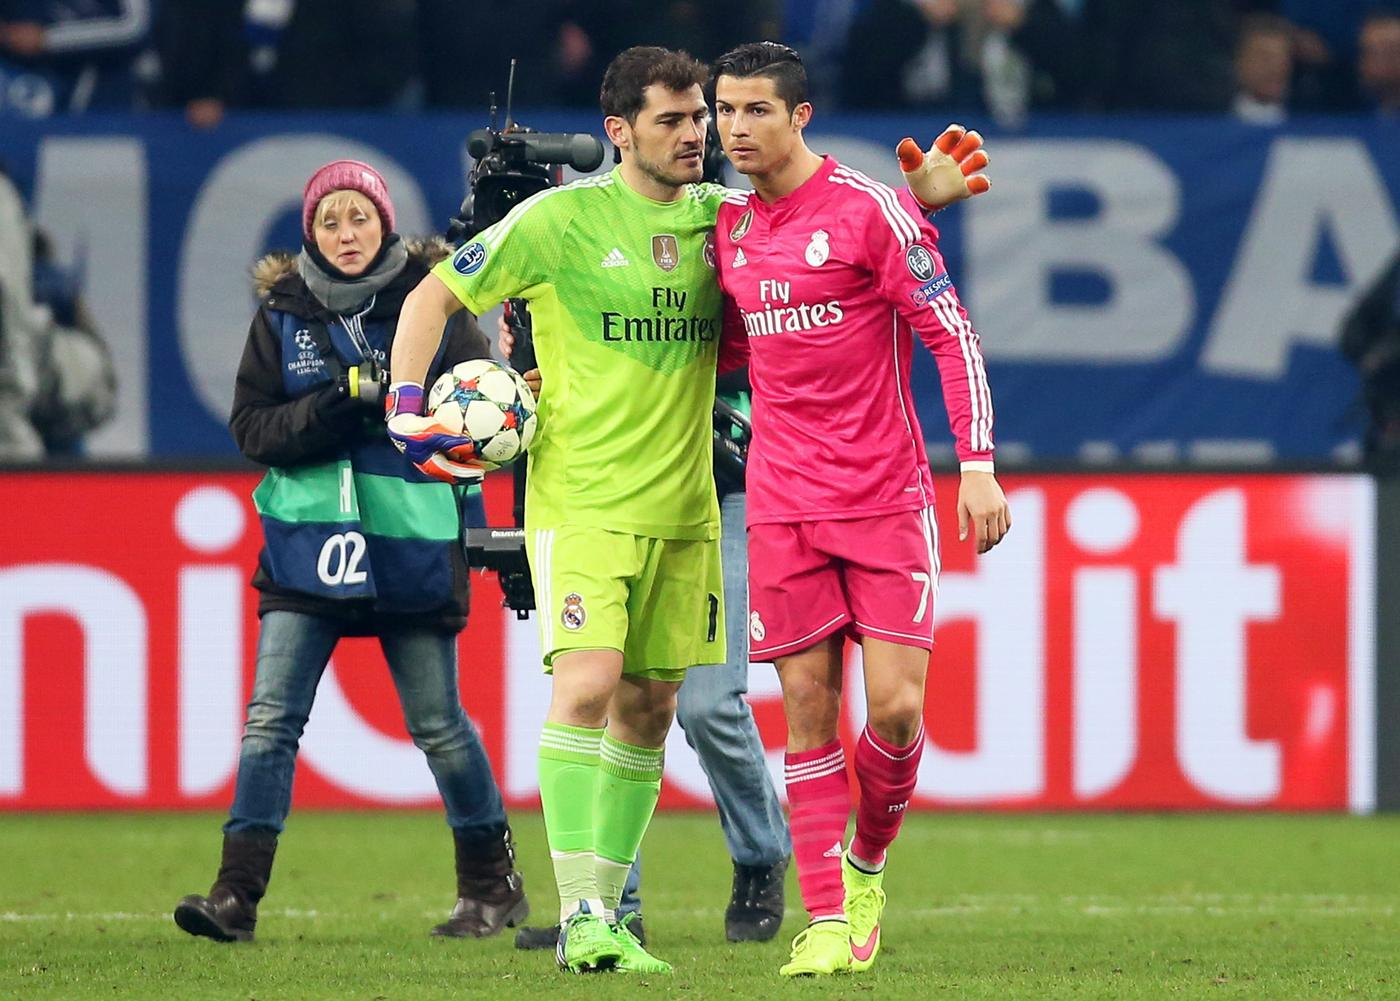 Cristiano Ronaldo and Iker Casillas 'certain' to leave Real Madrid this summer, claims club's ex-goalkeeper